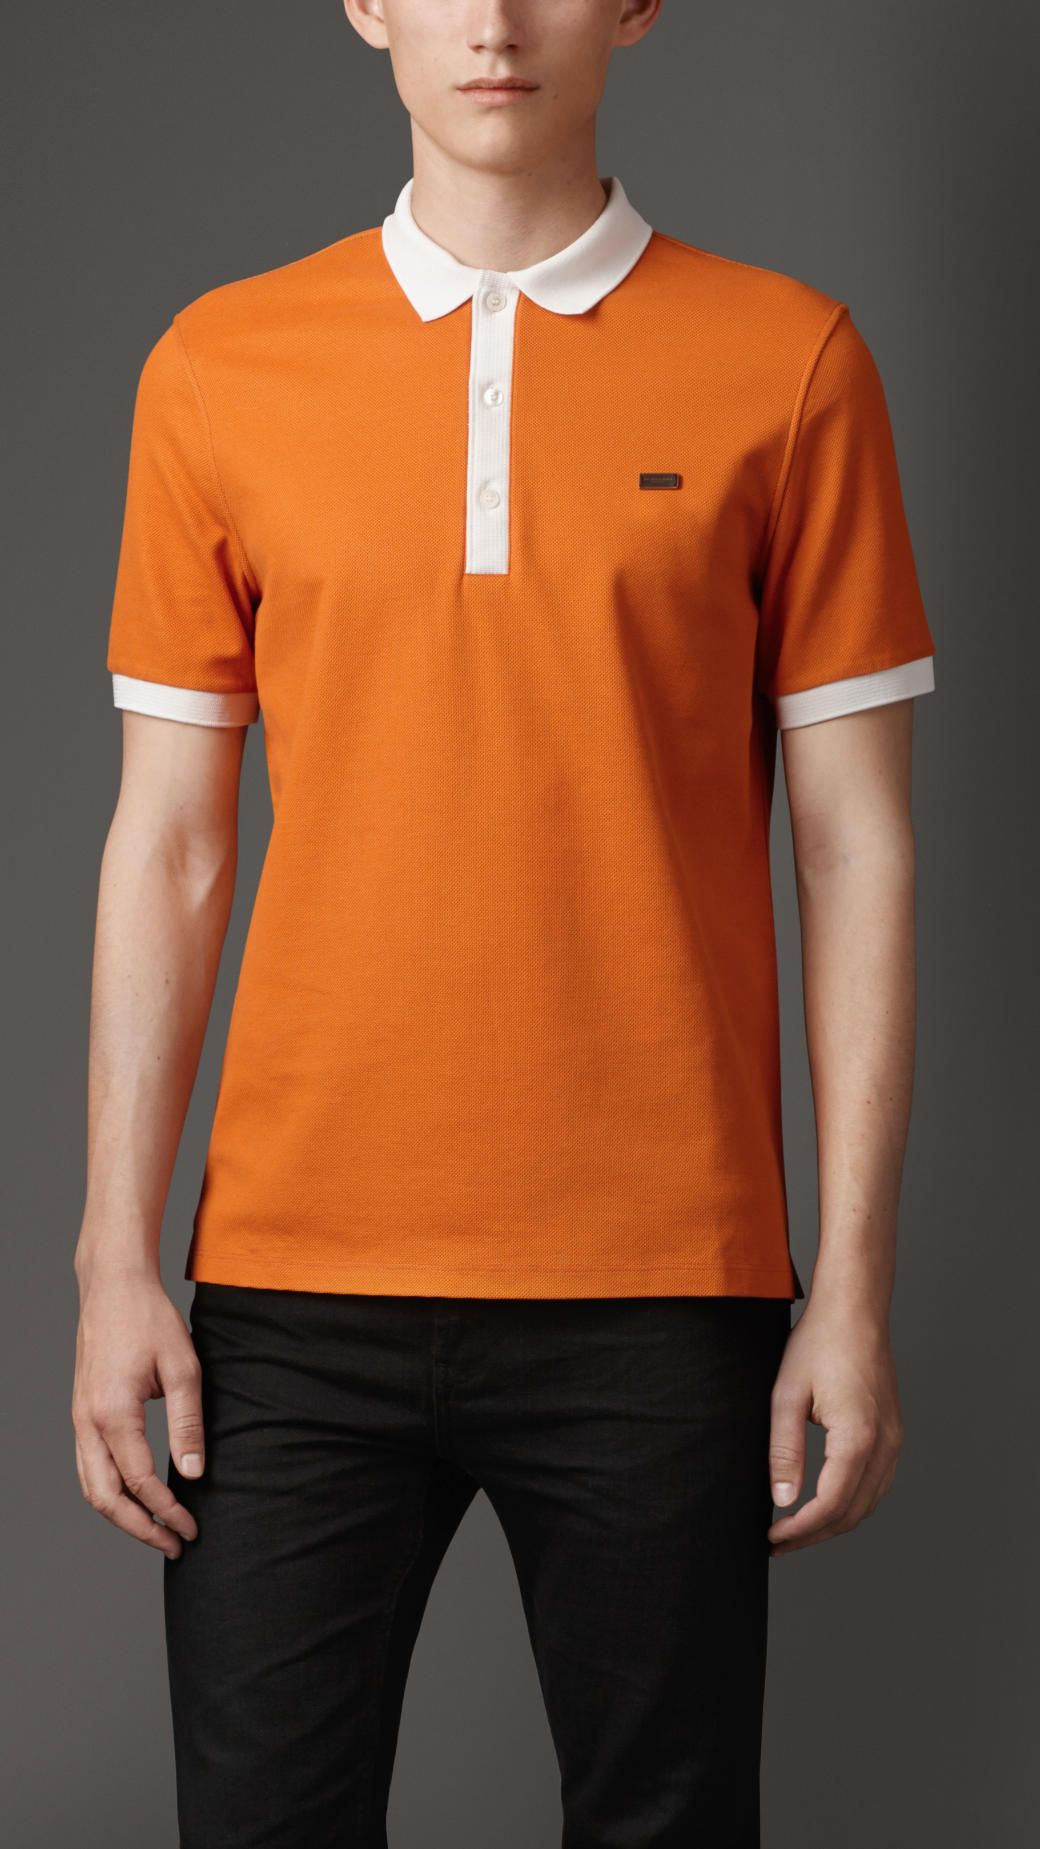 c017f6a31 Polo Shirts & T-Shirts for Men in 2019 | tshirt sketches | Polo ...